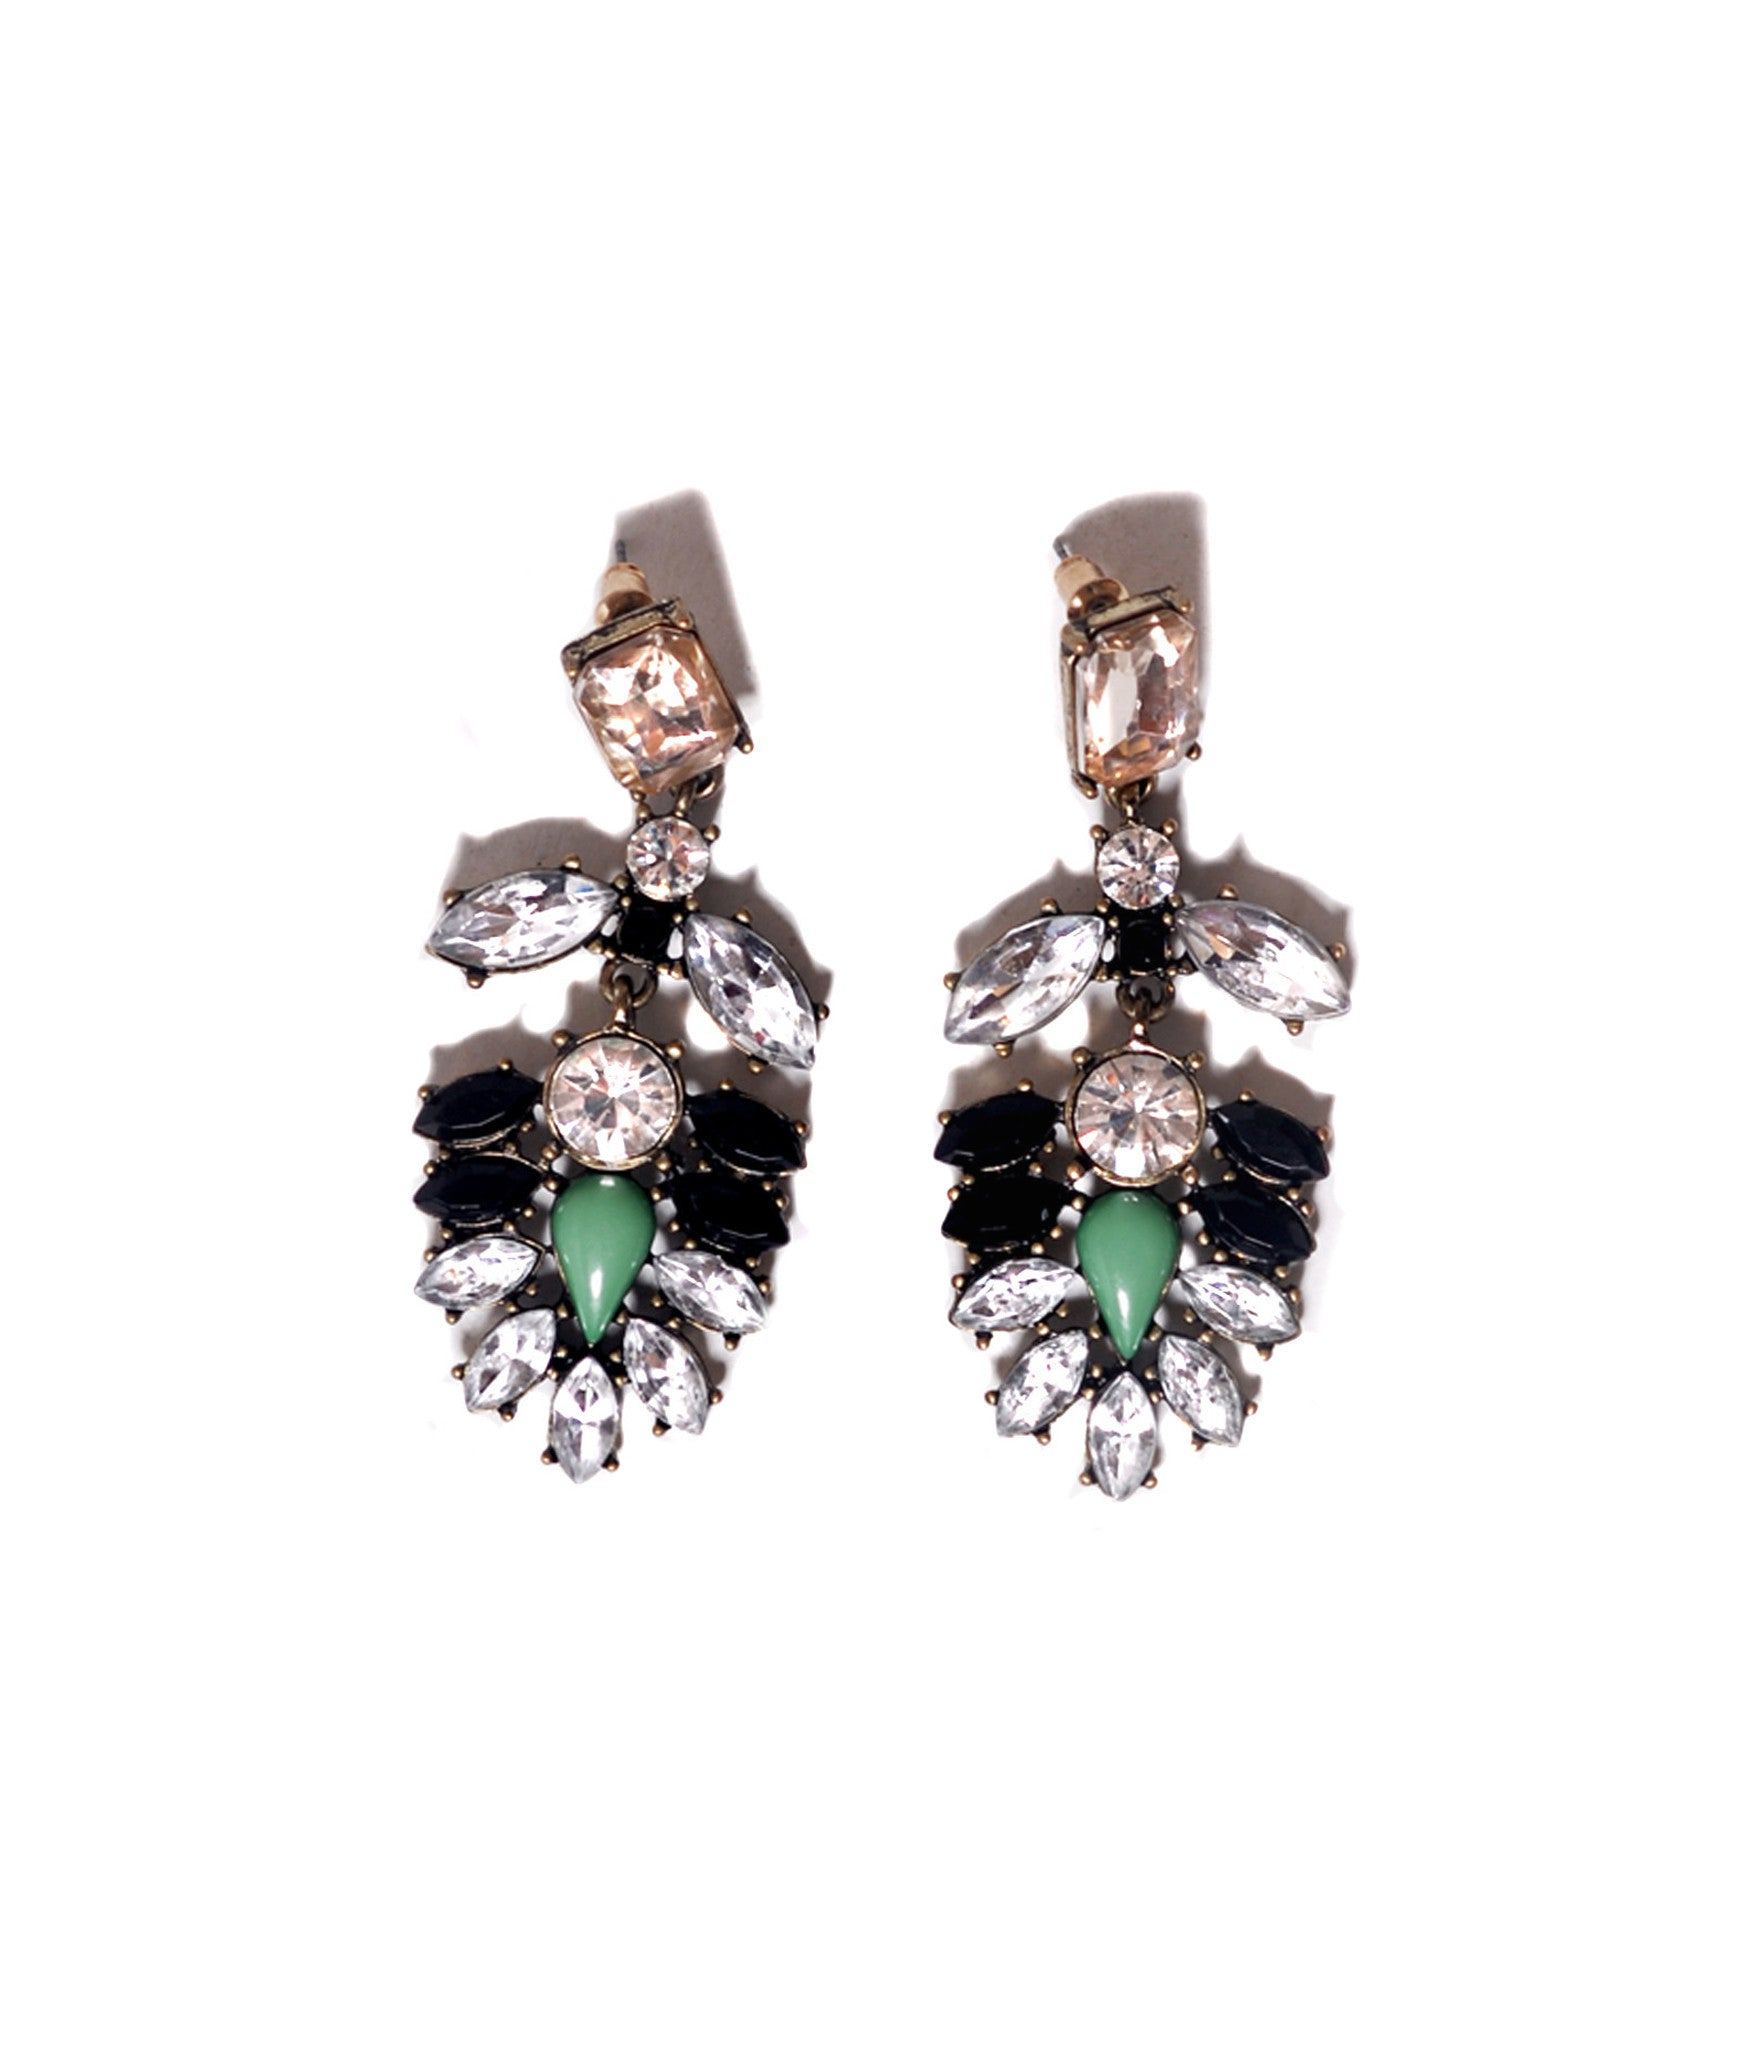 Emerald drop earrings - Stopshop London - 1